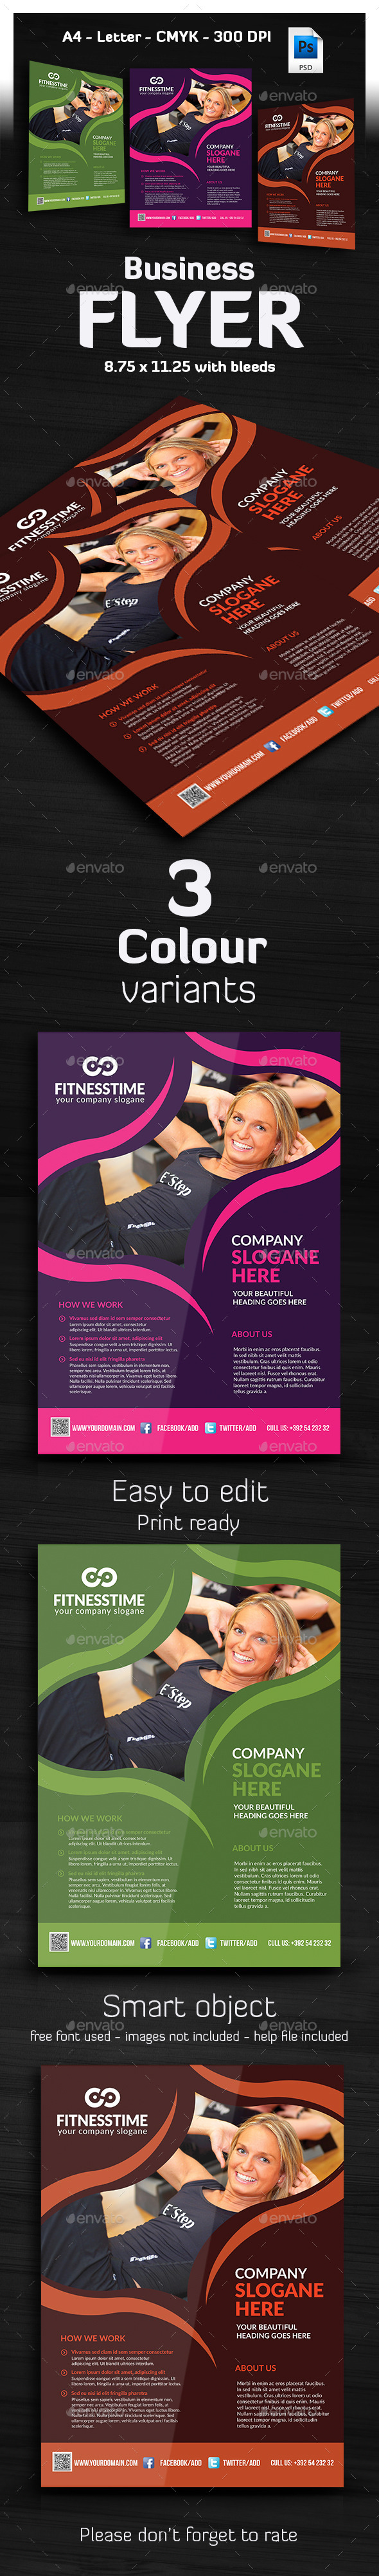 Tivato - Ultimate Business Flyer  - Corporate Flyers